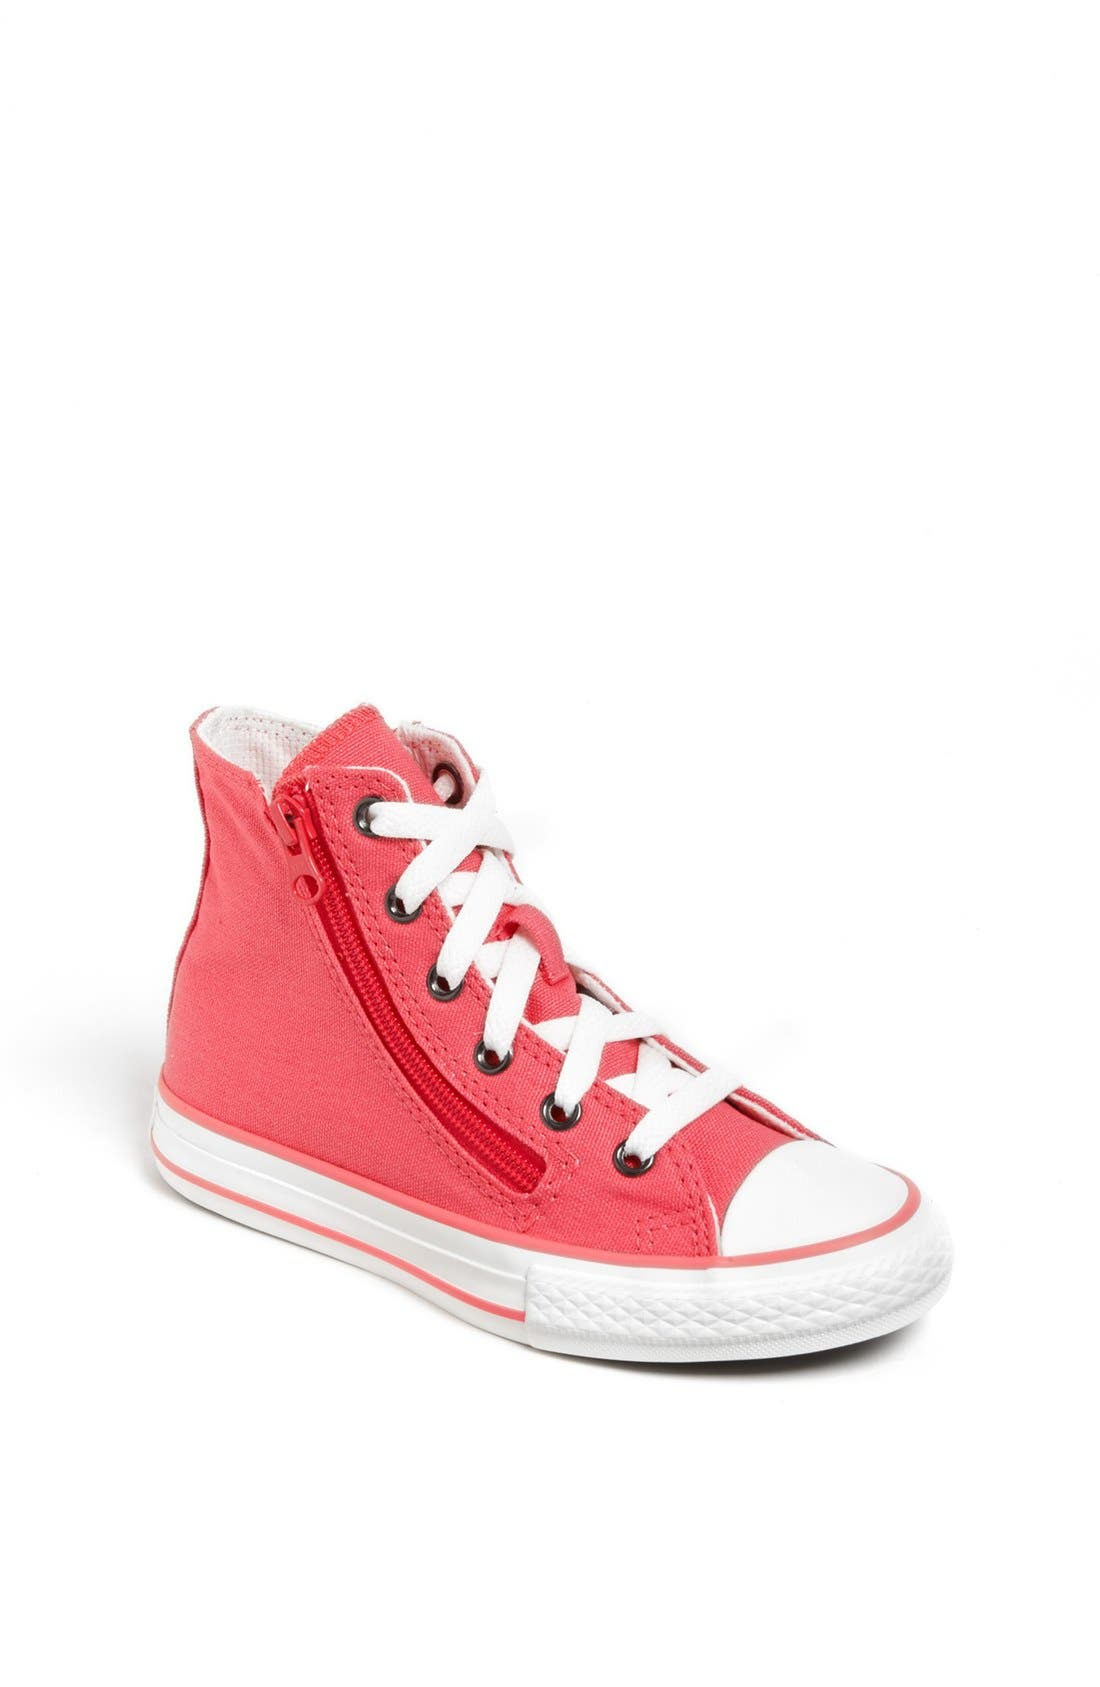 Alternate Image 1 Selected - Converse Chuck Taylor® All Star® High Top Sneaker (Toddler, Little Kid & Big Kid)